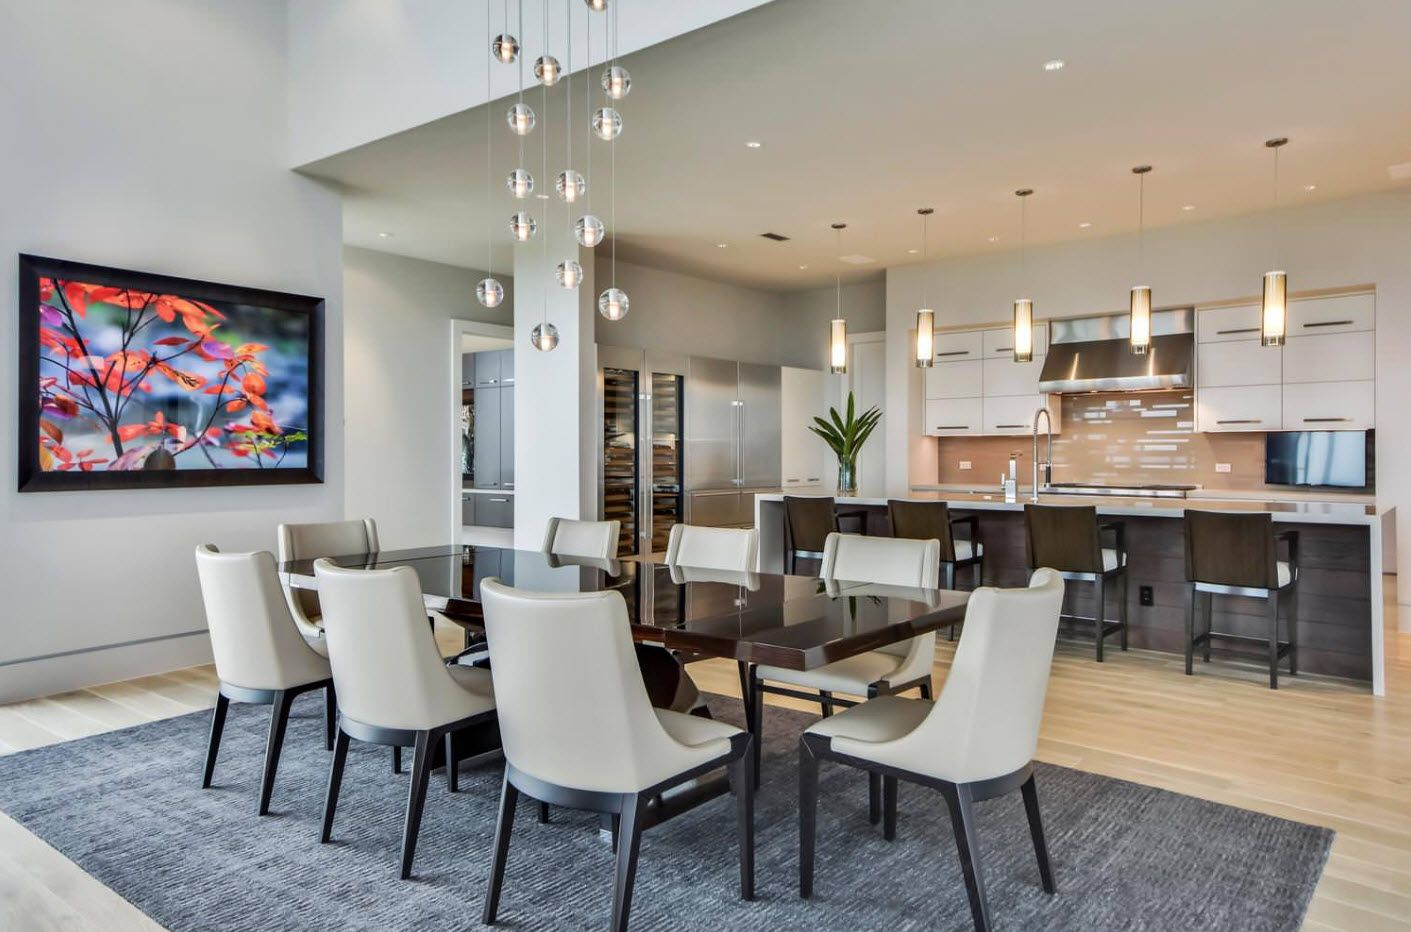 Modern dining room at the cotatge with coffee color upholstered chairs